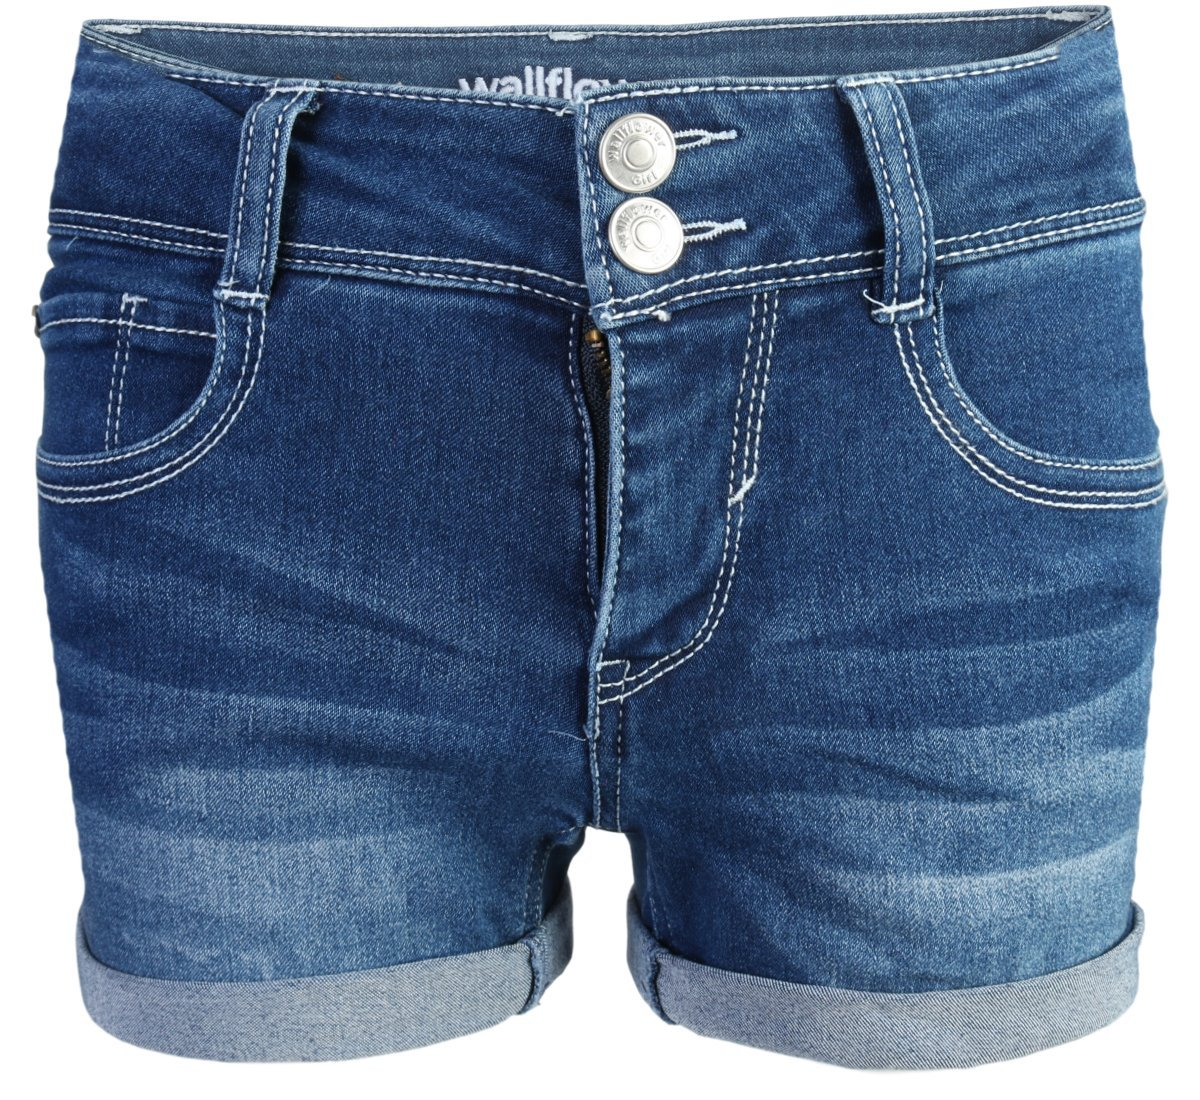 WallFlower Girls Soft Strech Denim Shorts, Dark Wash w/Stud Pocket, Size 10 by WallFlower Jeans